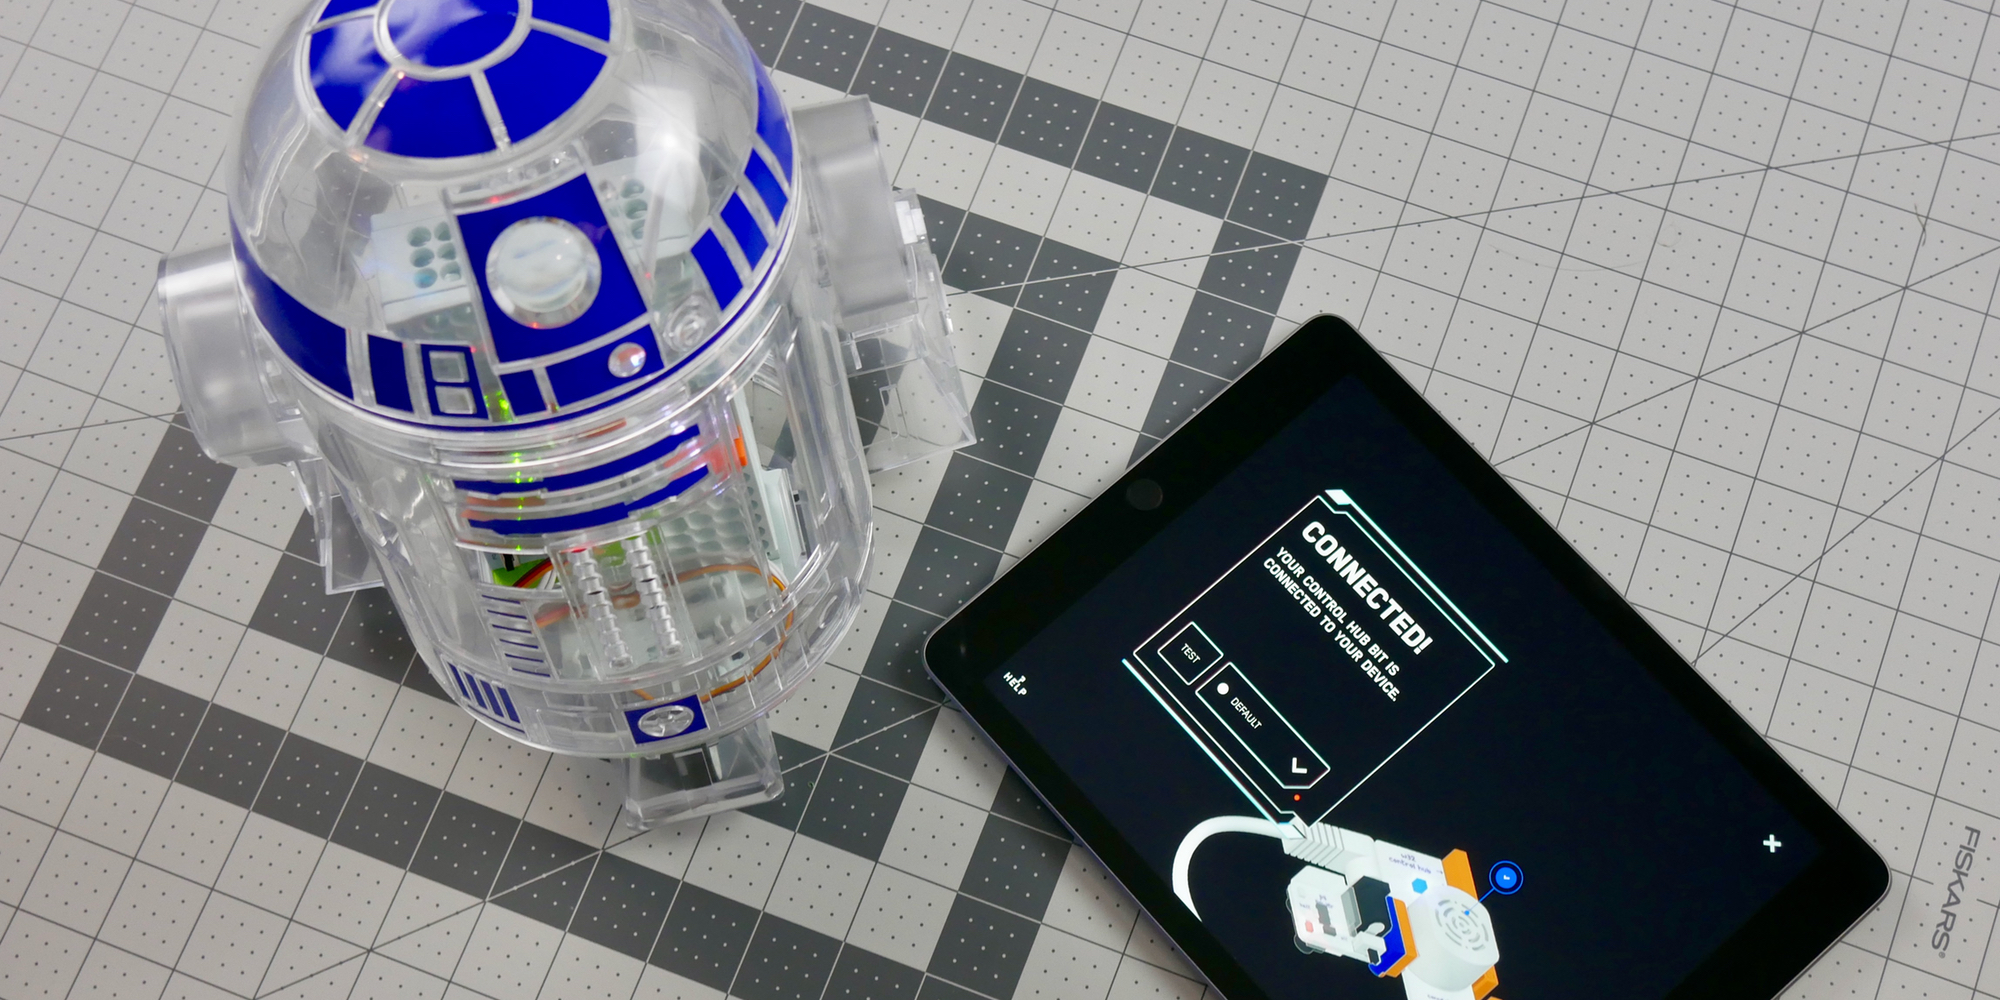 Hone your coding skills with the littleBits Star Wars Droid Inventor Kit at $71.50 shipped (20% off)